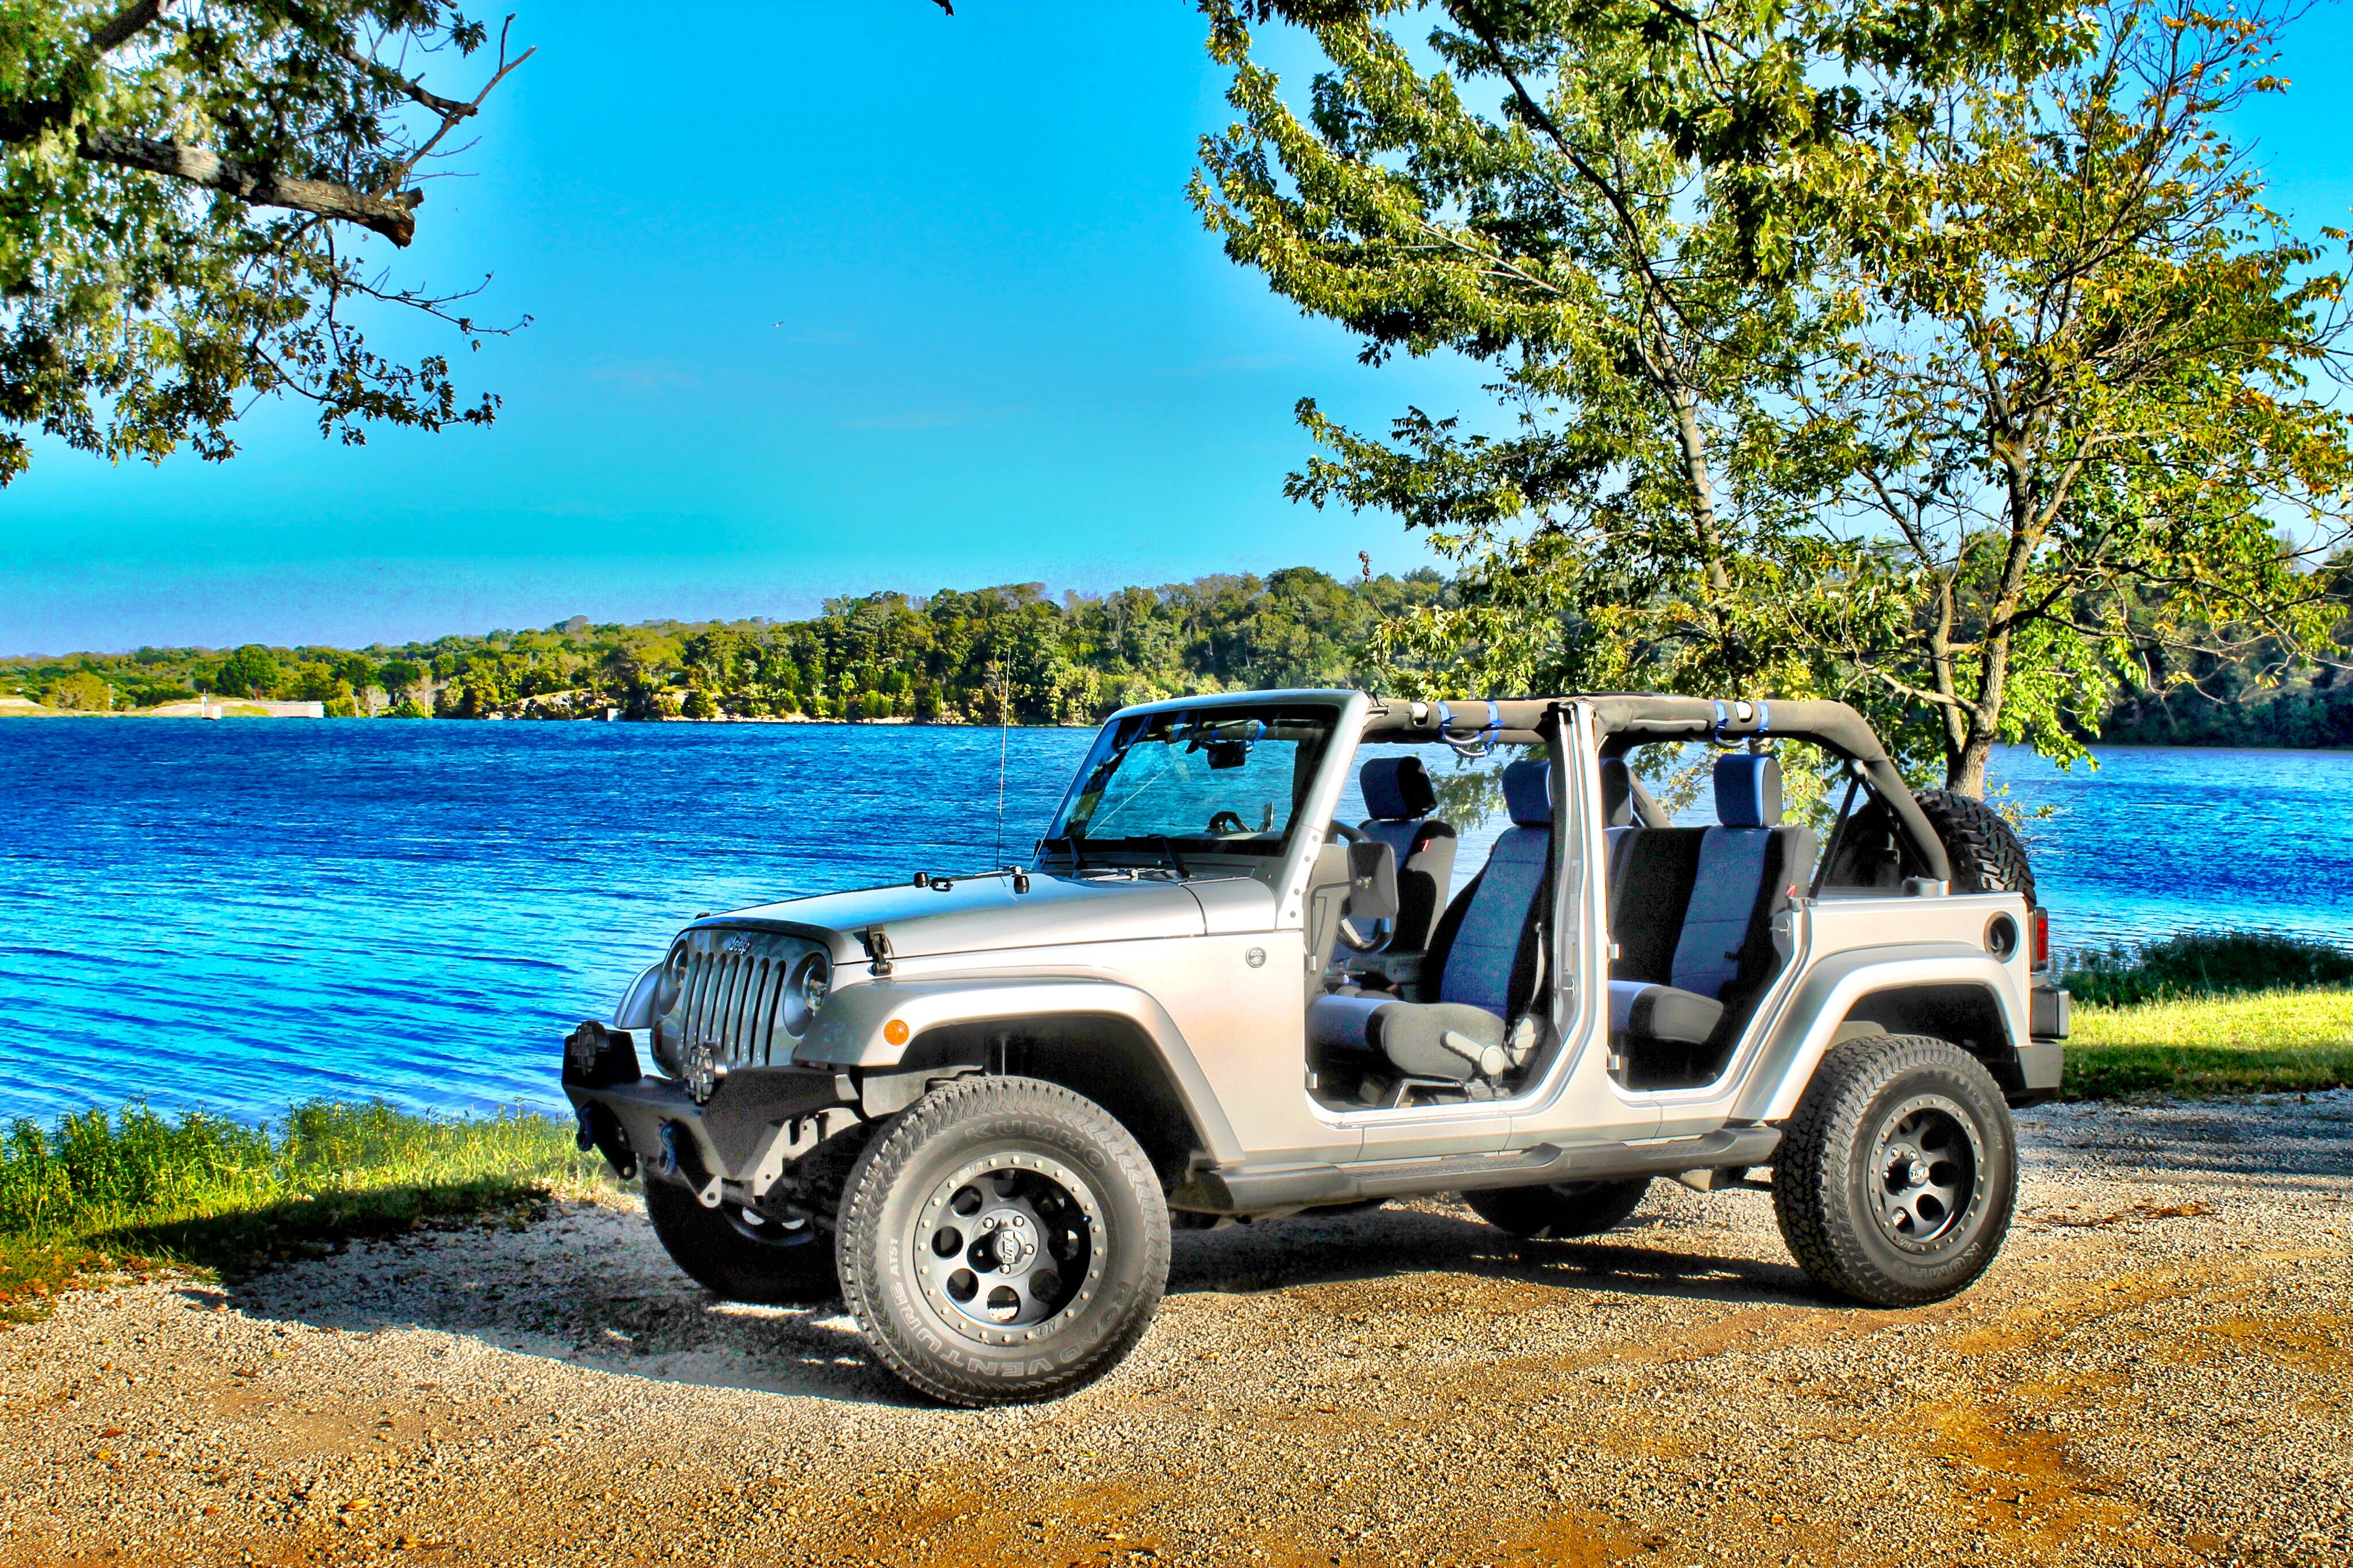 Free stock photo of water, lake, outdoors, jeep